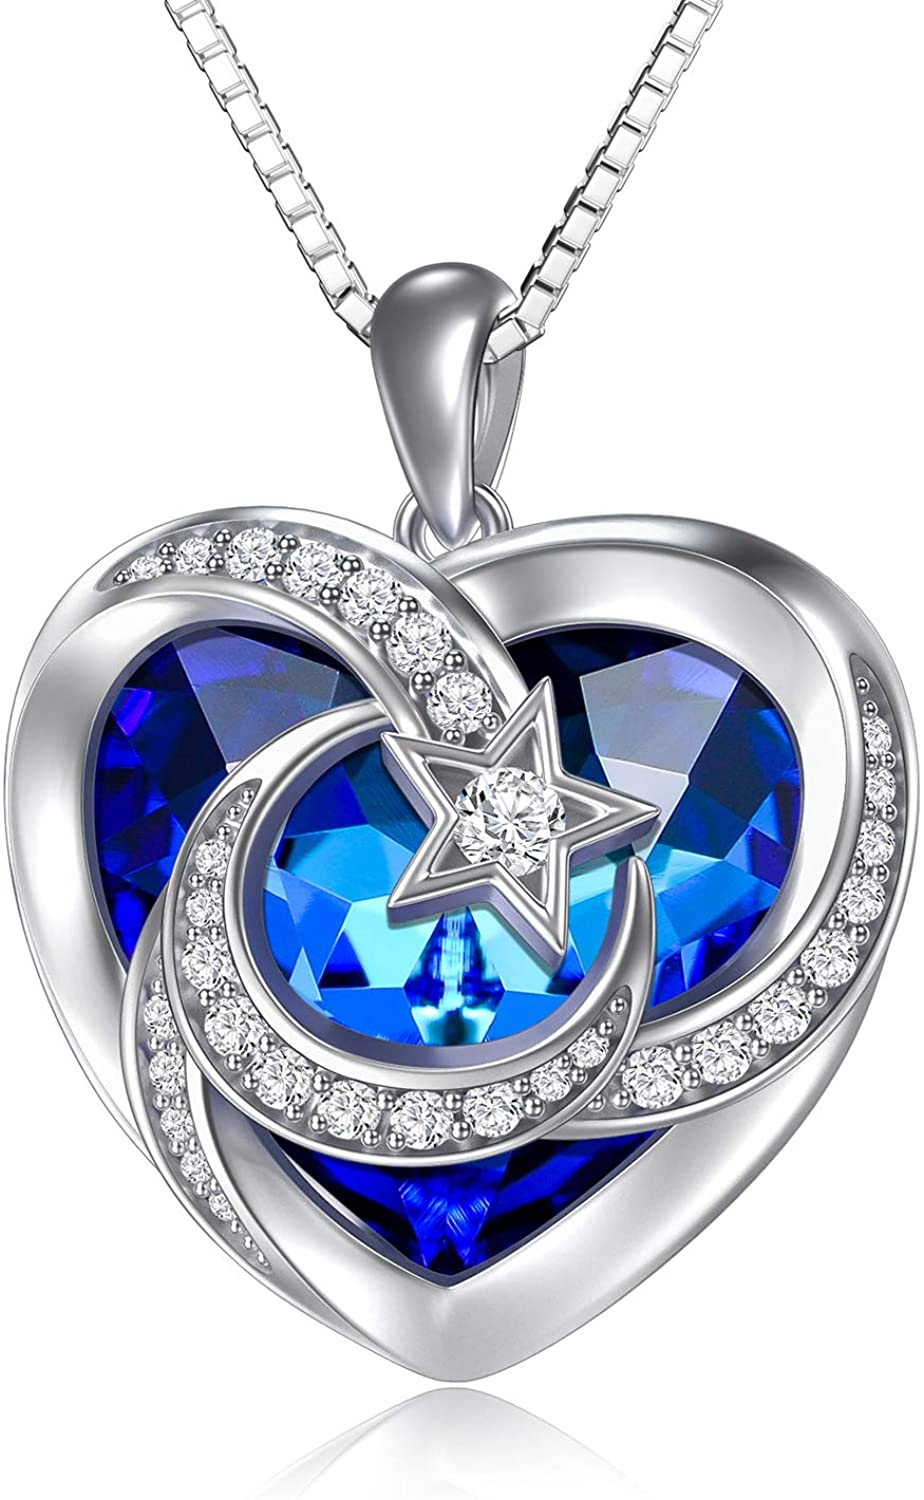 TOUPOP s925 Sterling Silver Moon and Star Heart Pendant Necklace with Blue/Purple Heart Crystal Jewelry Gifts for Women Teen Girls Birthday Christmas